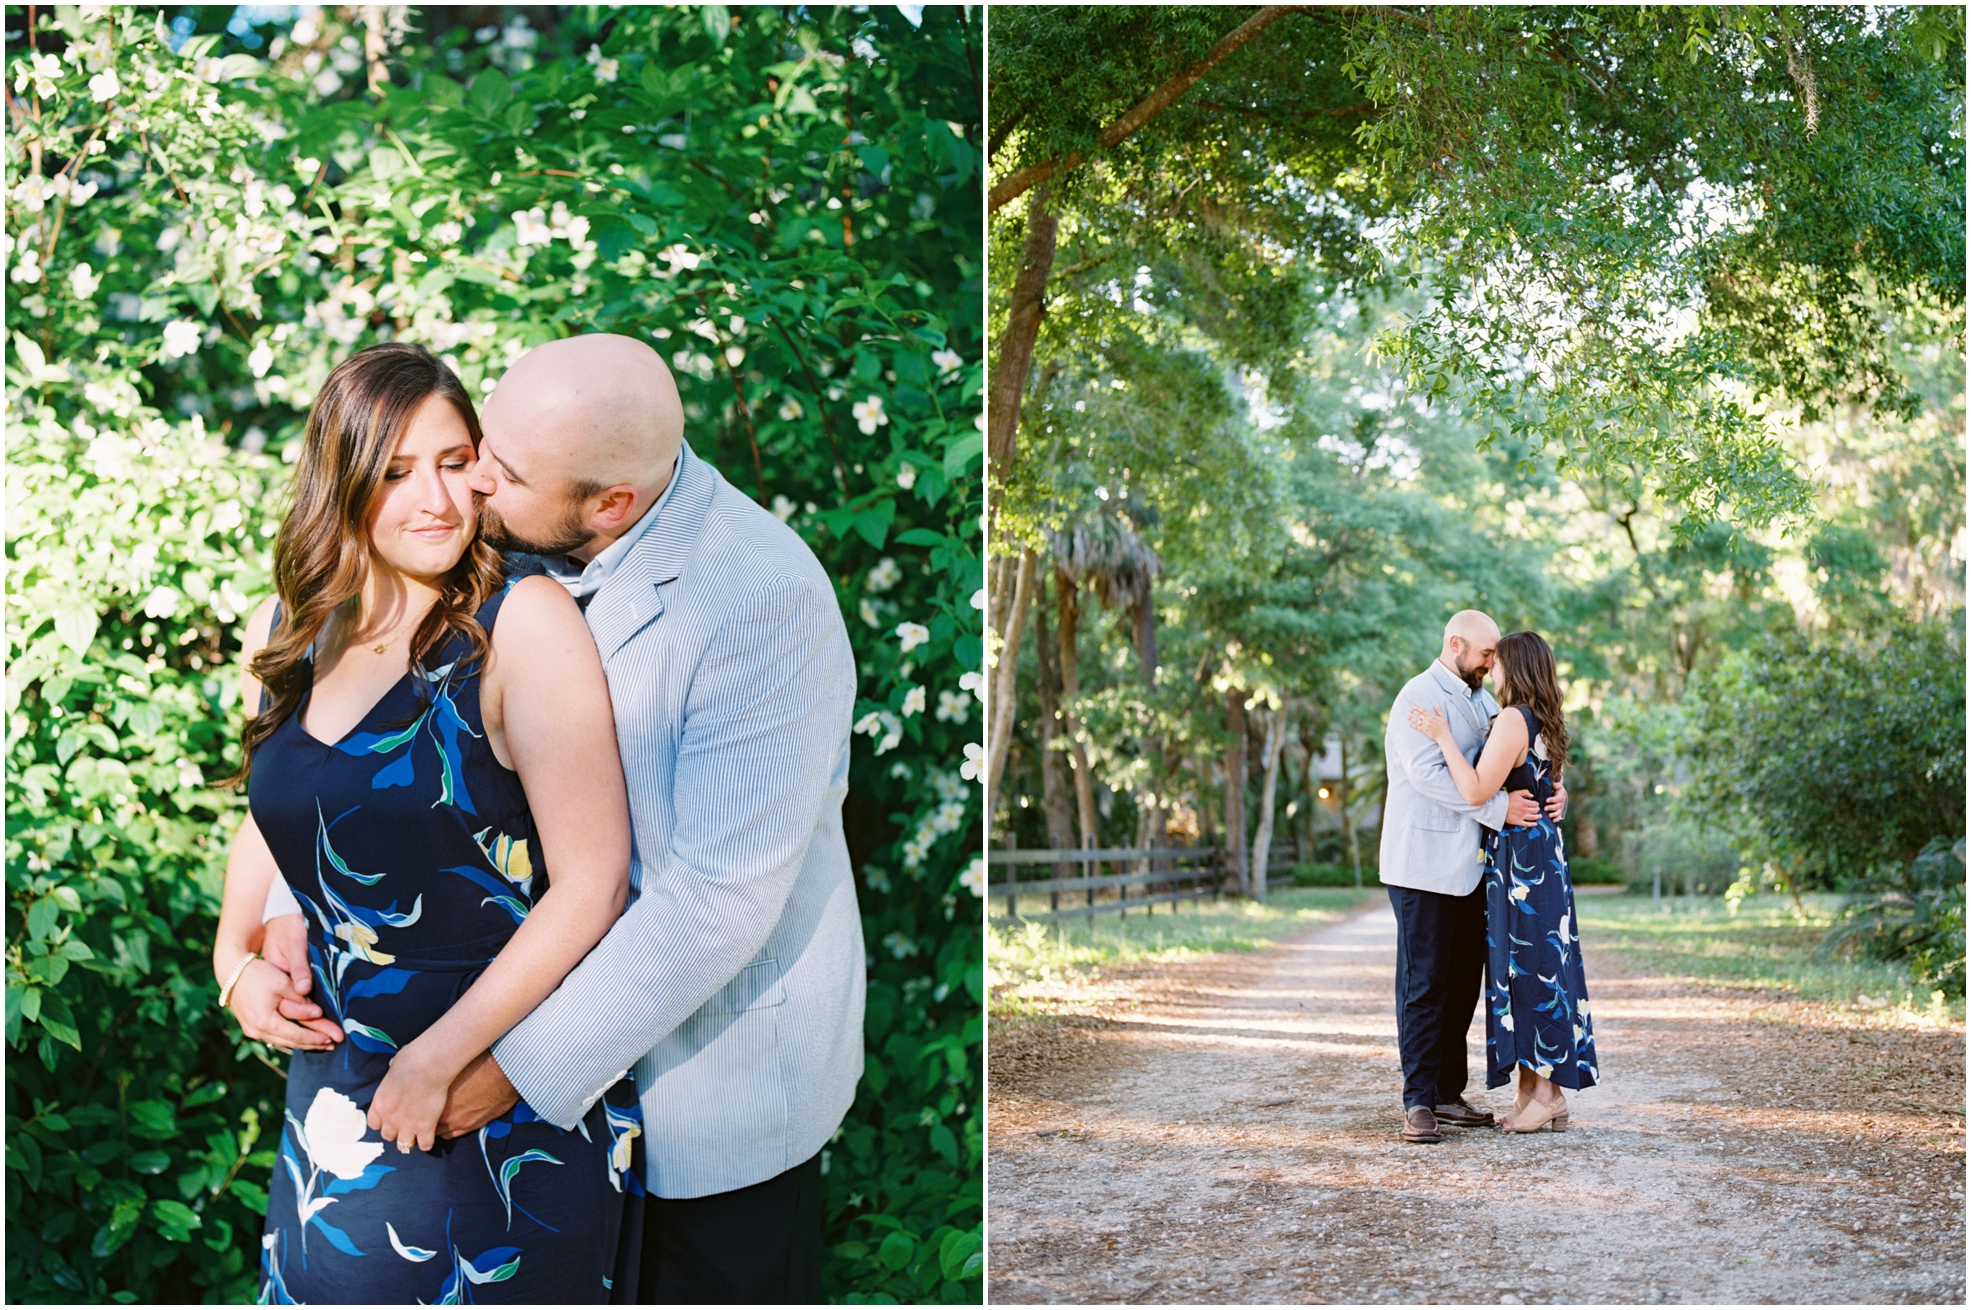 Lisa Silva Photography- Jacksonville, St. Augustine, Amelia Island, Ponte Vedra Beach, North East Florida Fine Art Film Photographer- Engagement Session in Historic Downtown Fernandina Beach- Amelia Island Wedding Photographer_0031.jpg